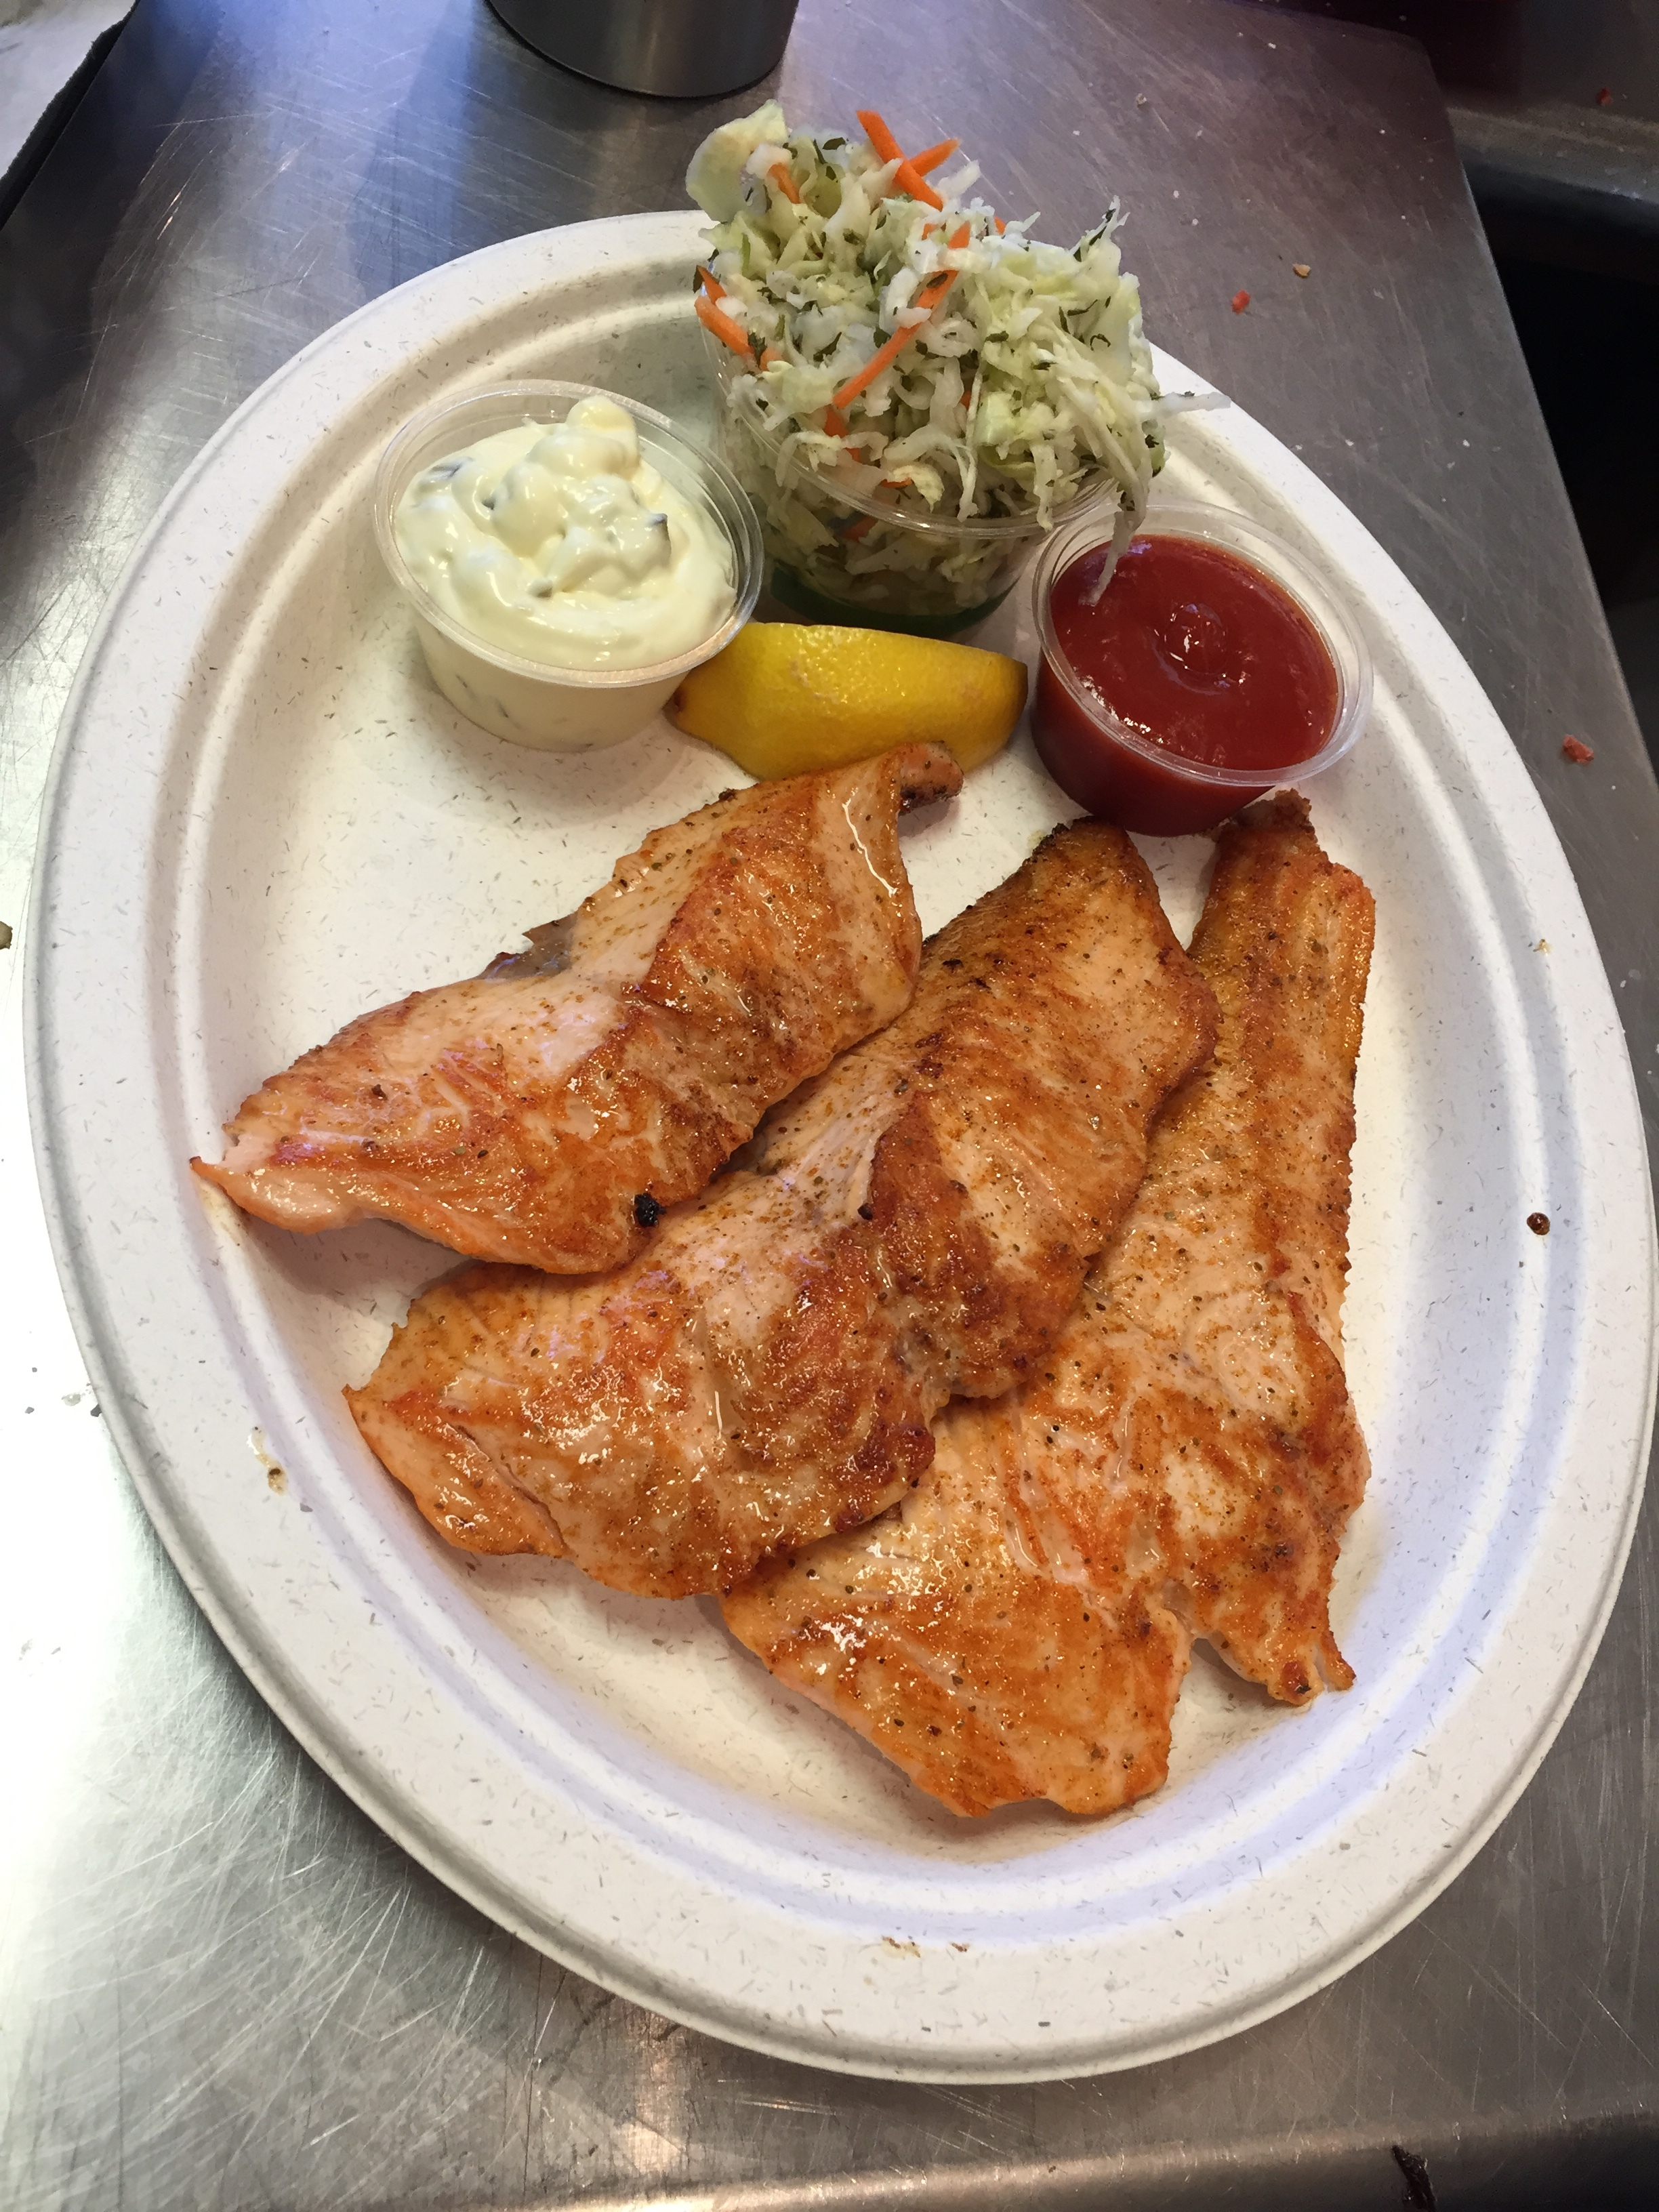 The grilled salmon at Tin Fish  Photo credit: Sheffield Priest